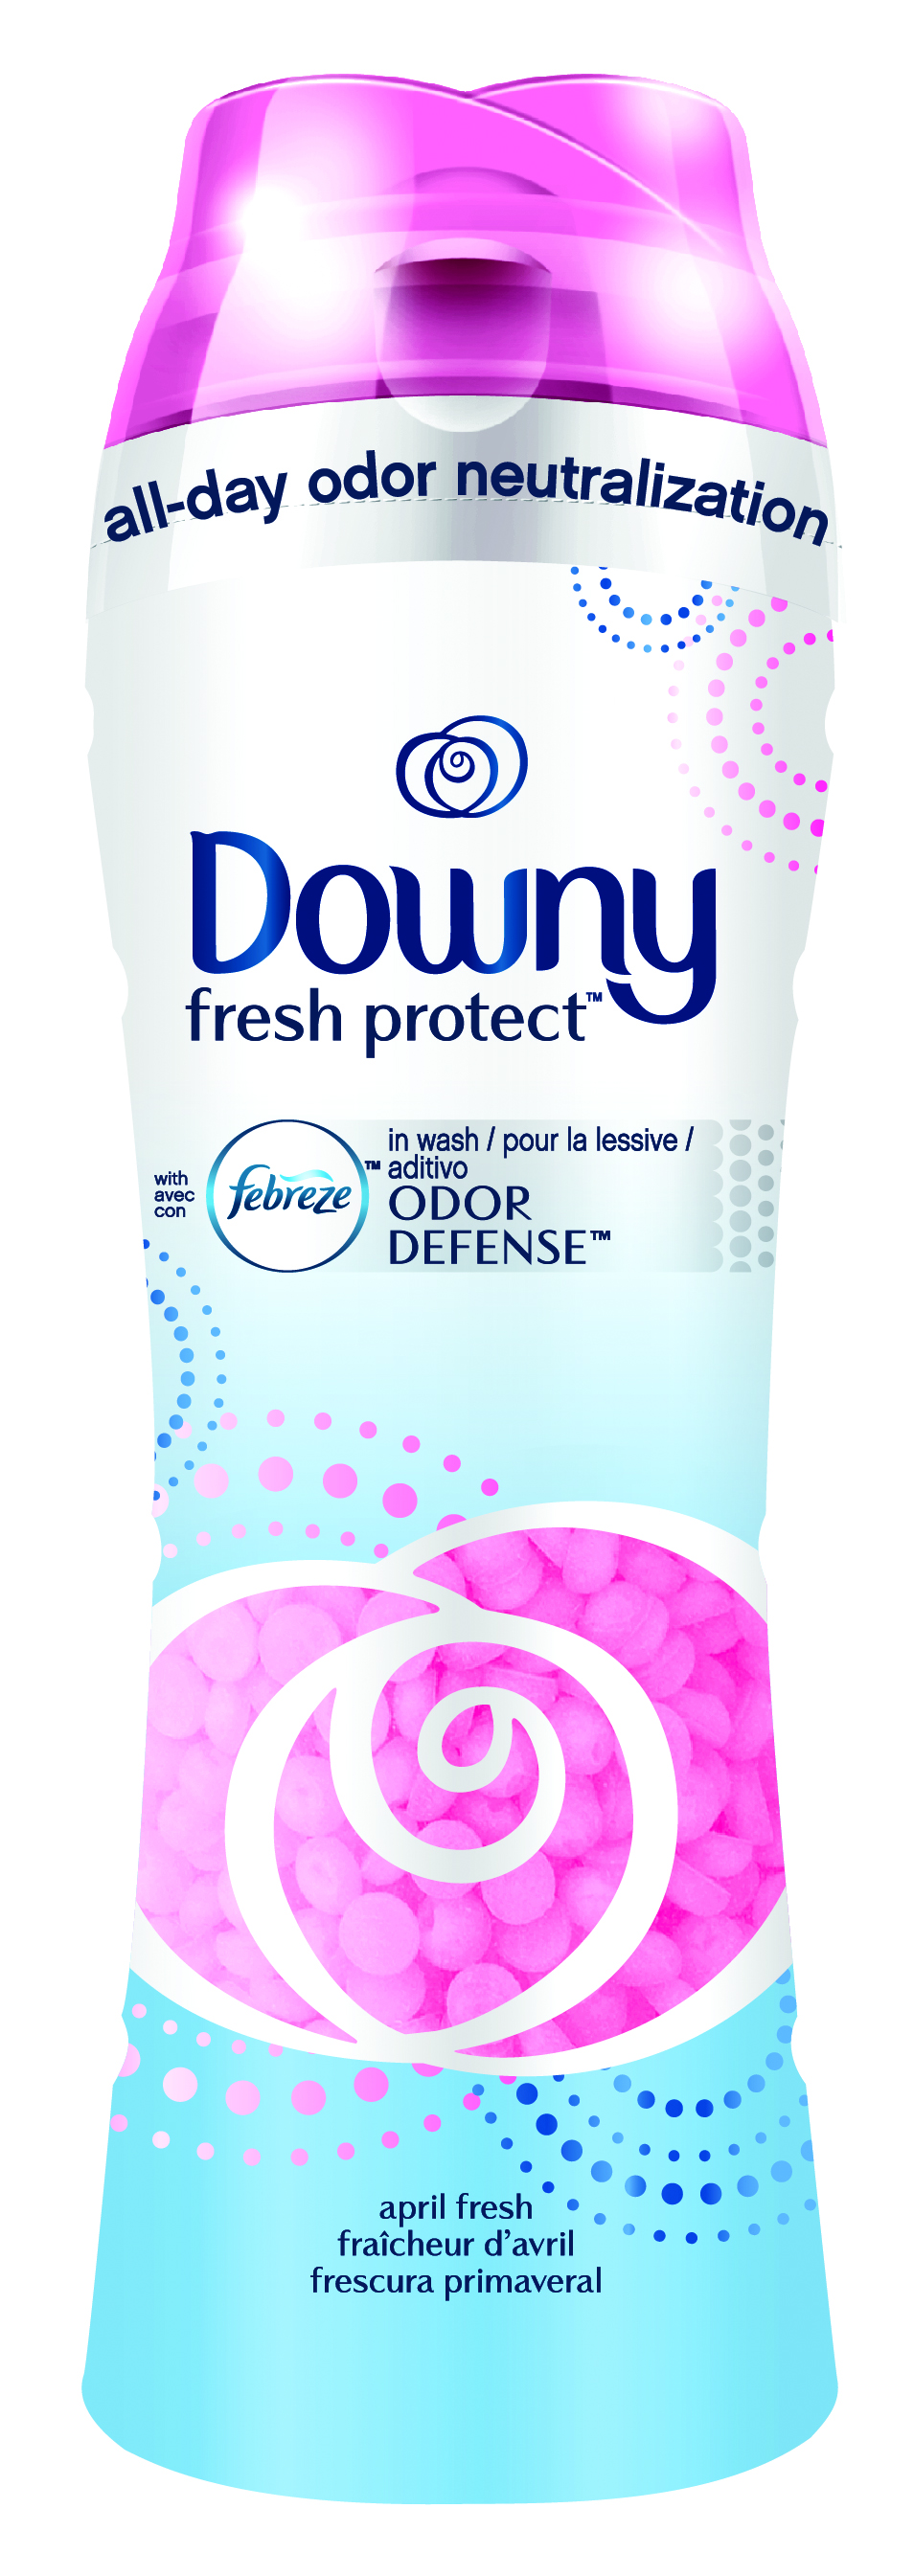 Downy Fresh Protect with Febreze Odor Defense -April Fresh.jpg